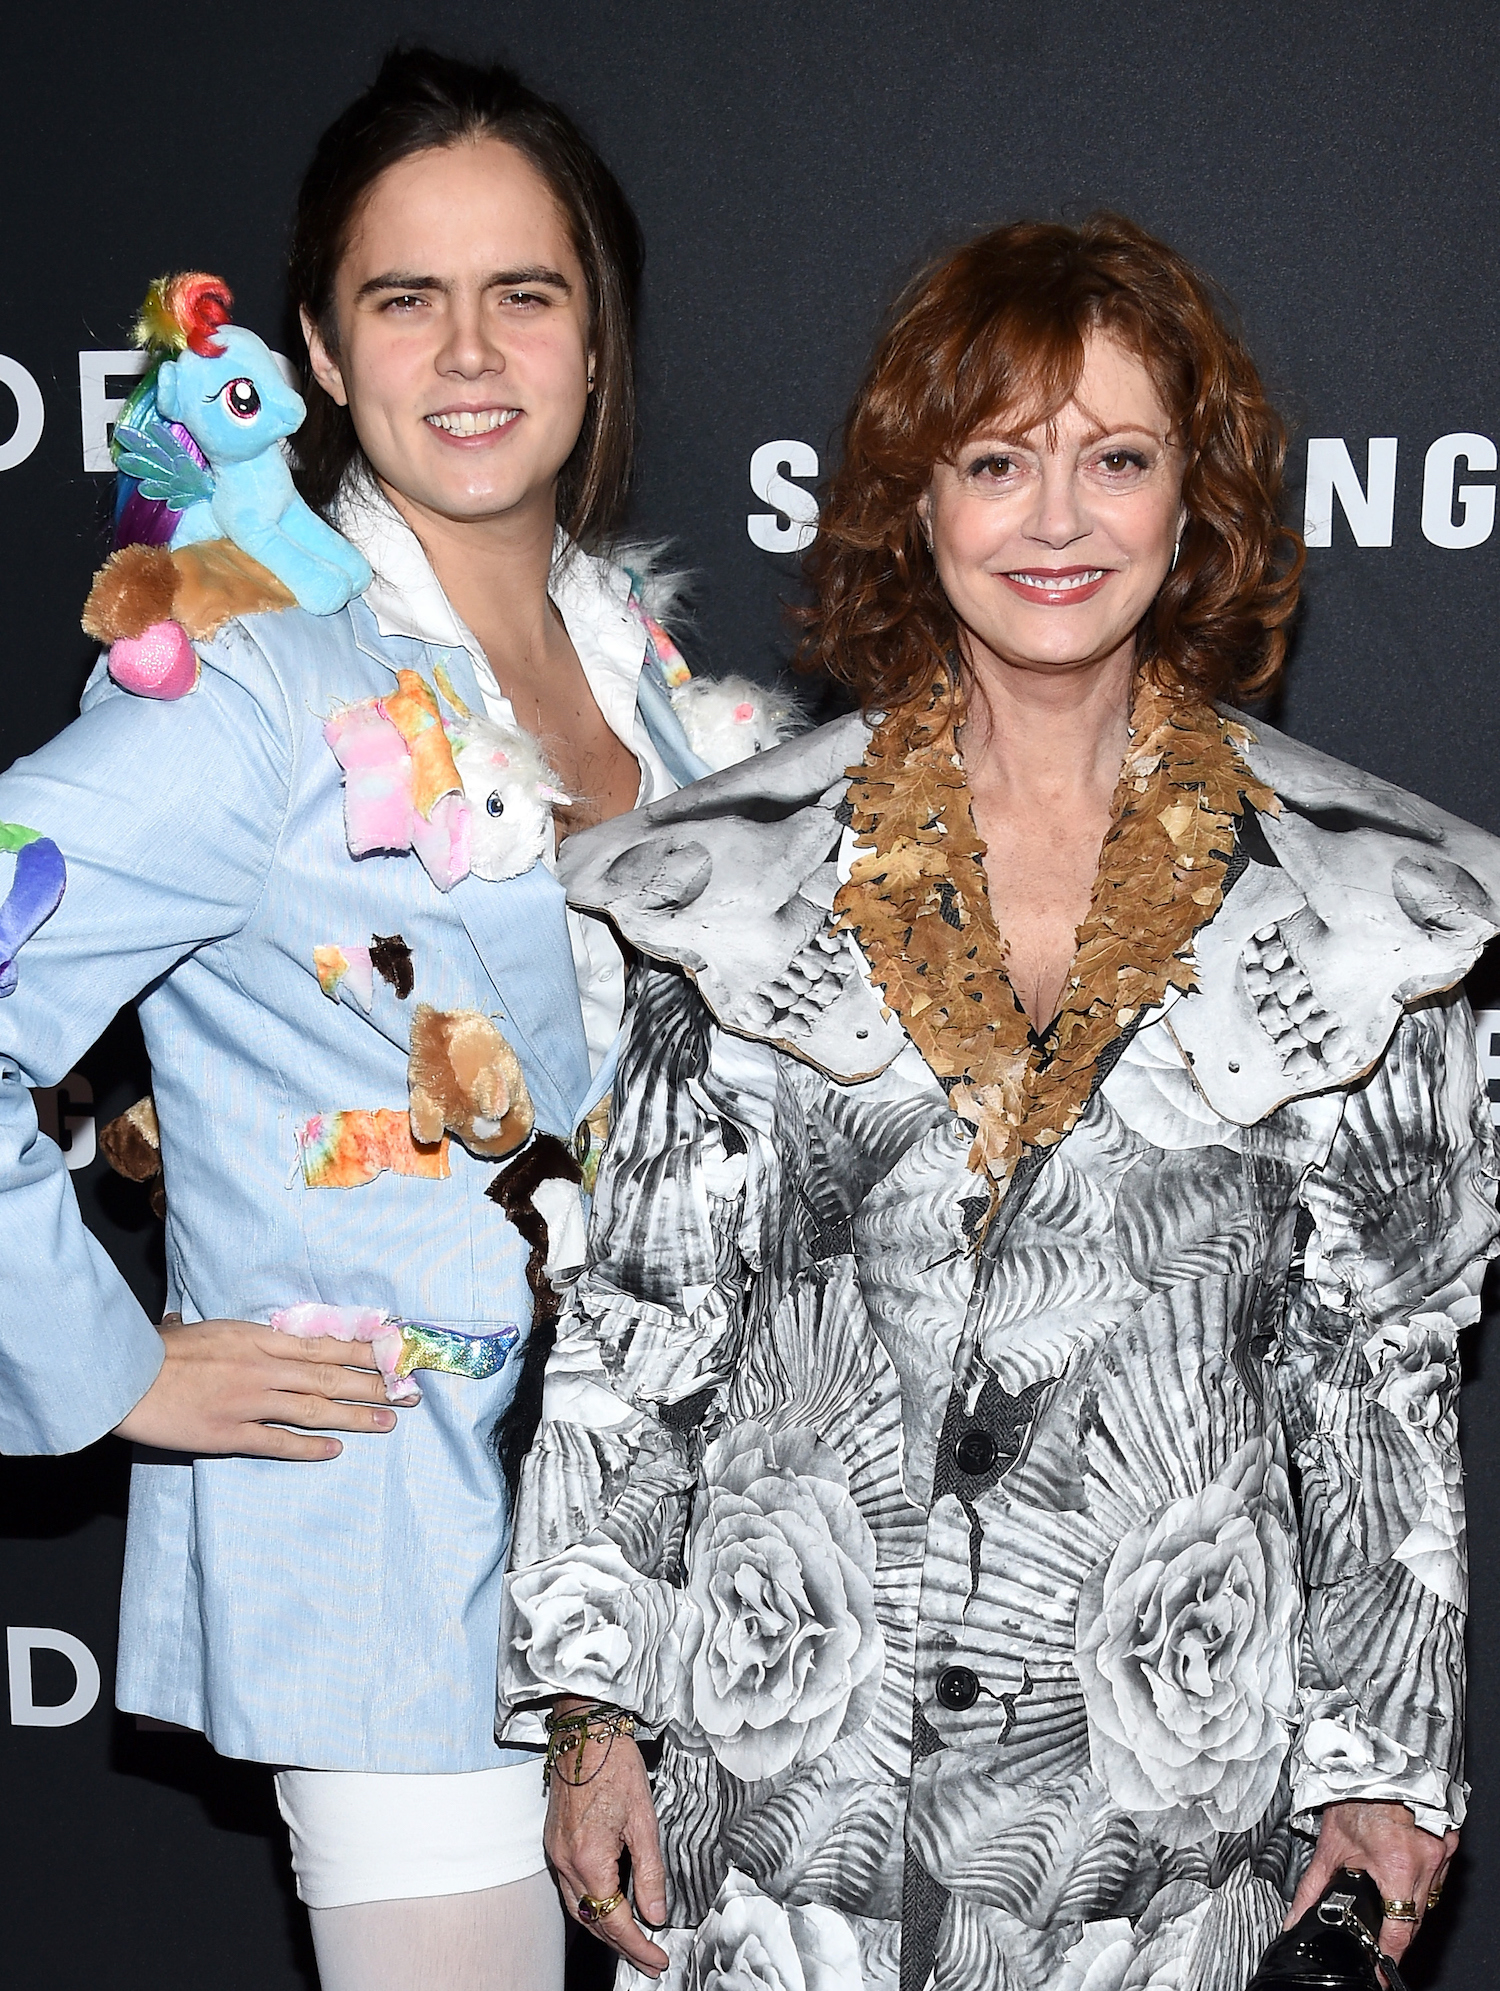 """NEW YORK, NY - FEBRUARY 09: Actors Miles Robbins (L) and Susan Sarandon attends the """"Zoolander 2"""" World Premiere at Alice Tully Hall on February 9, 2016 in New York City. (Photo by Dimitrios Kambouris/Getty Images)"""